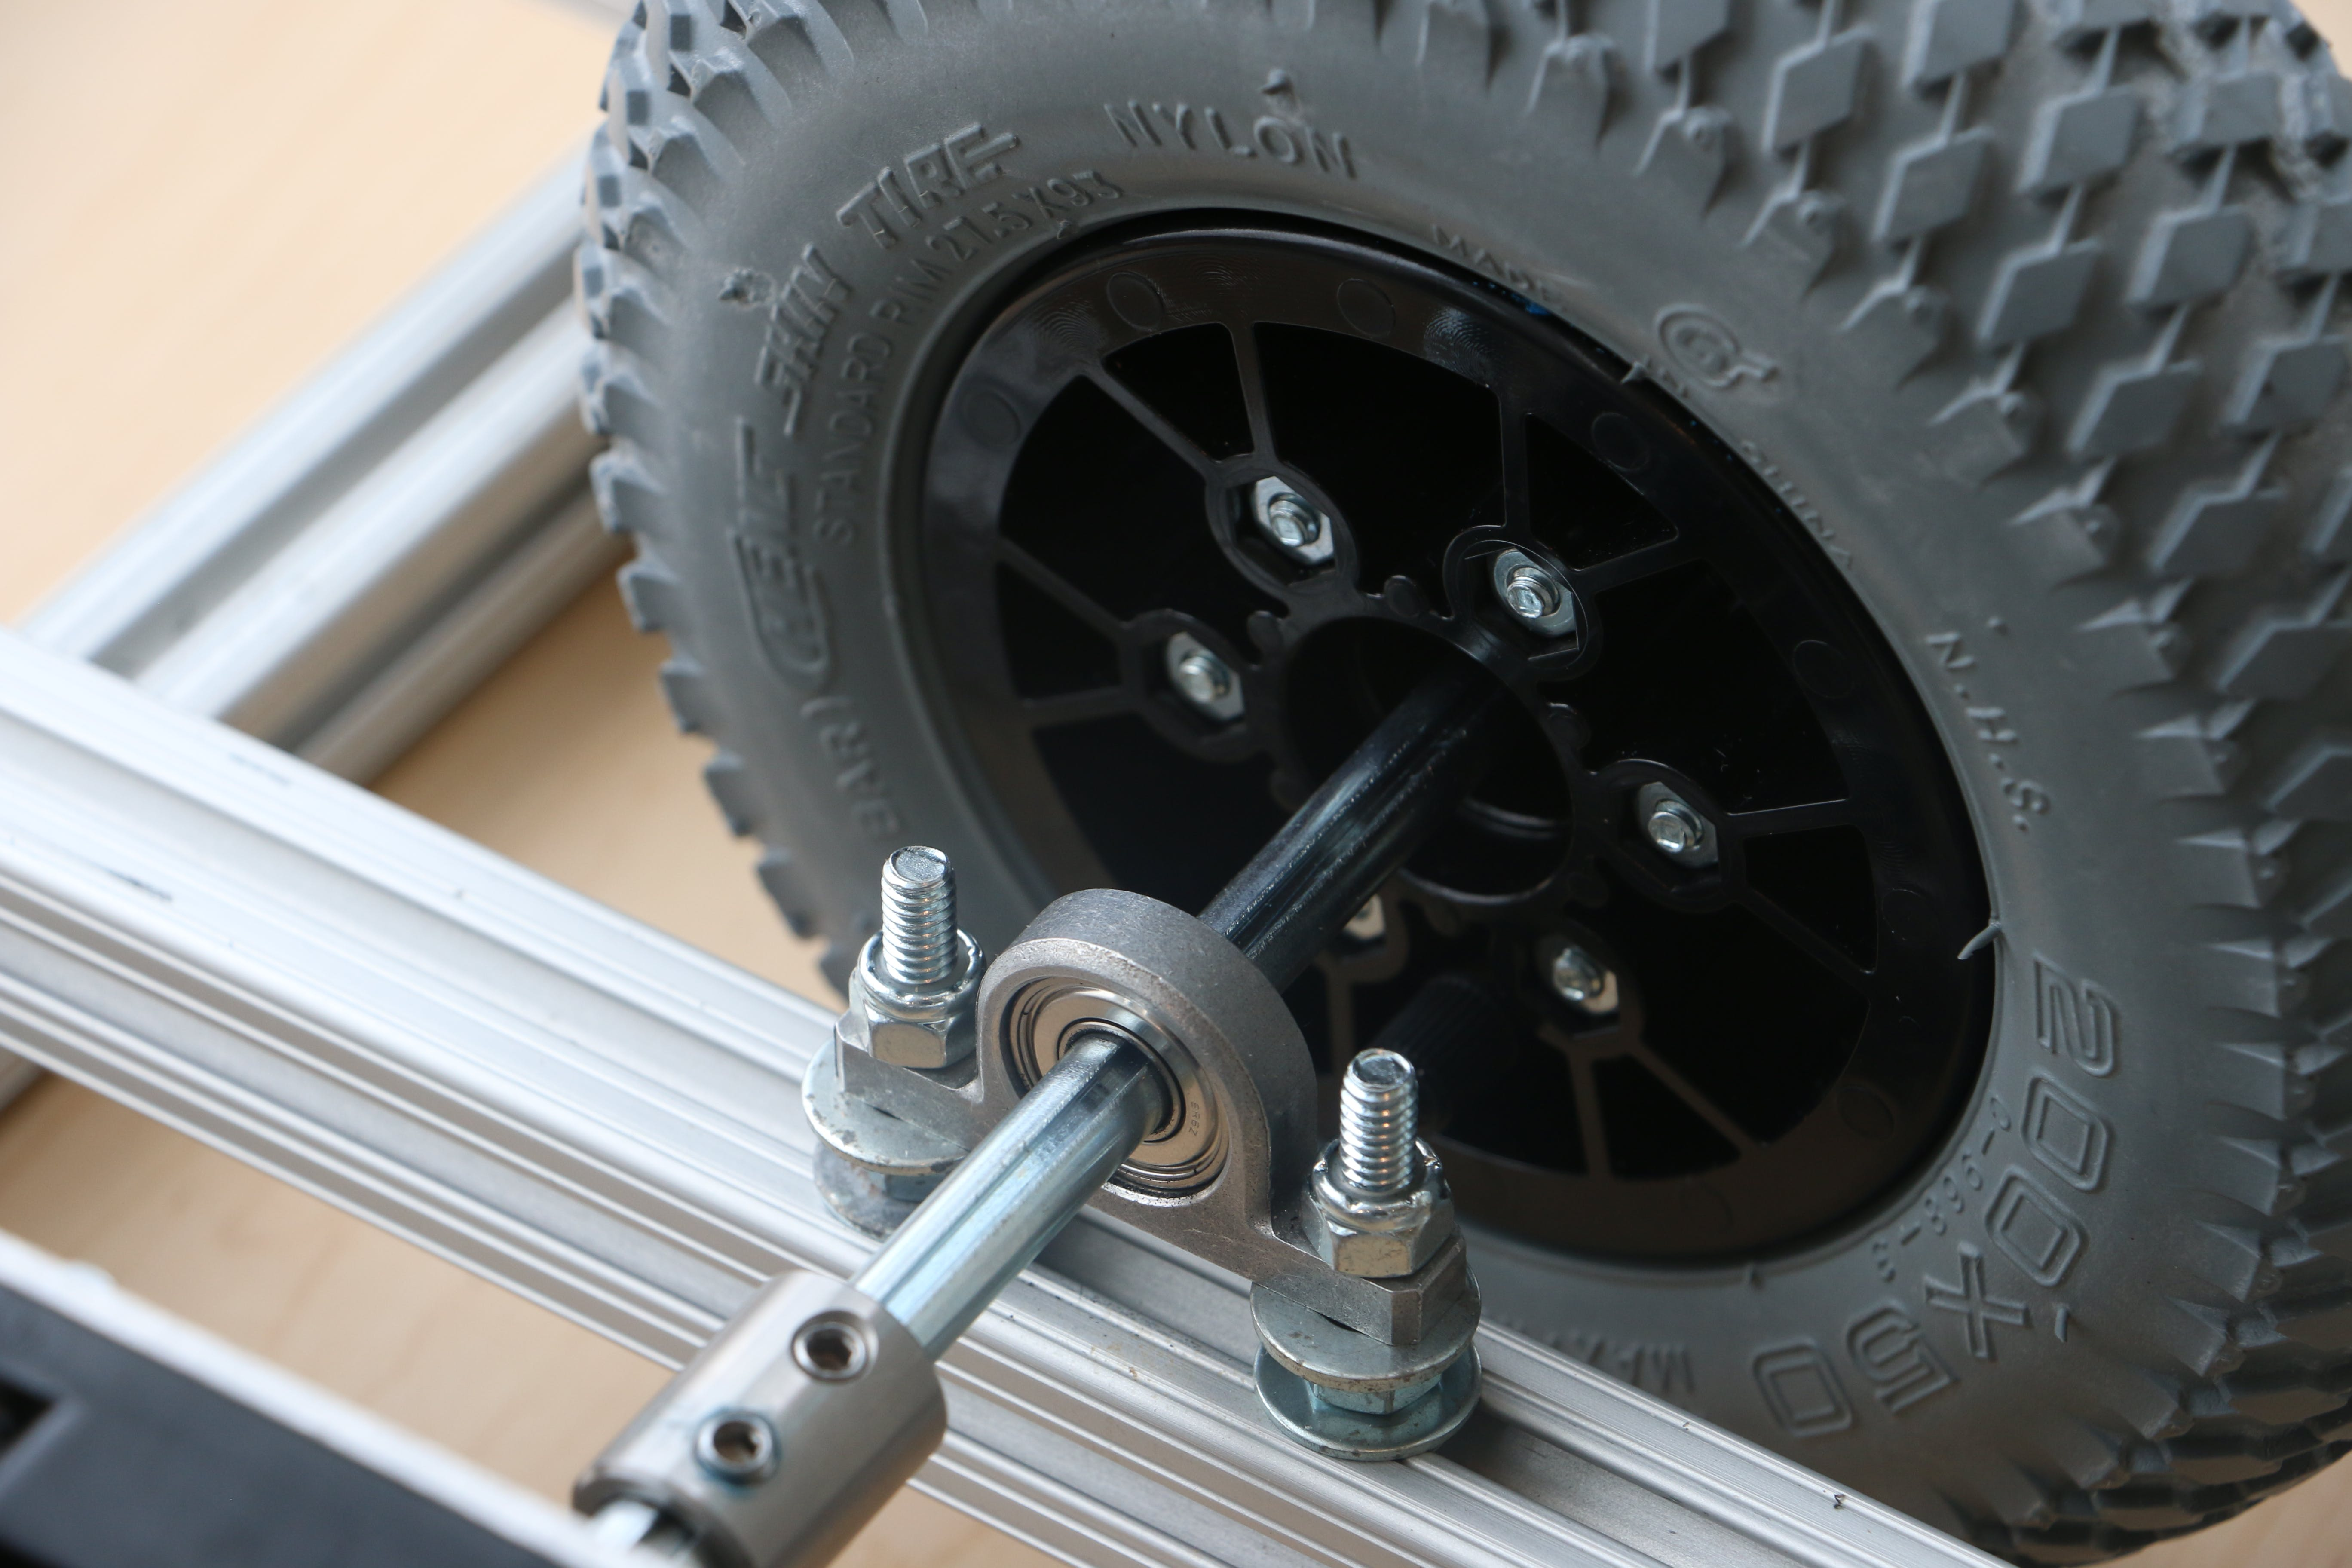 The aluminum base mount for the bearing + other side of the wheel, screws, and nuts.